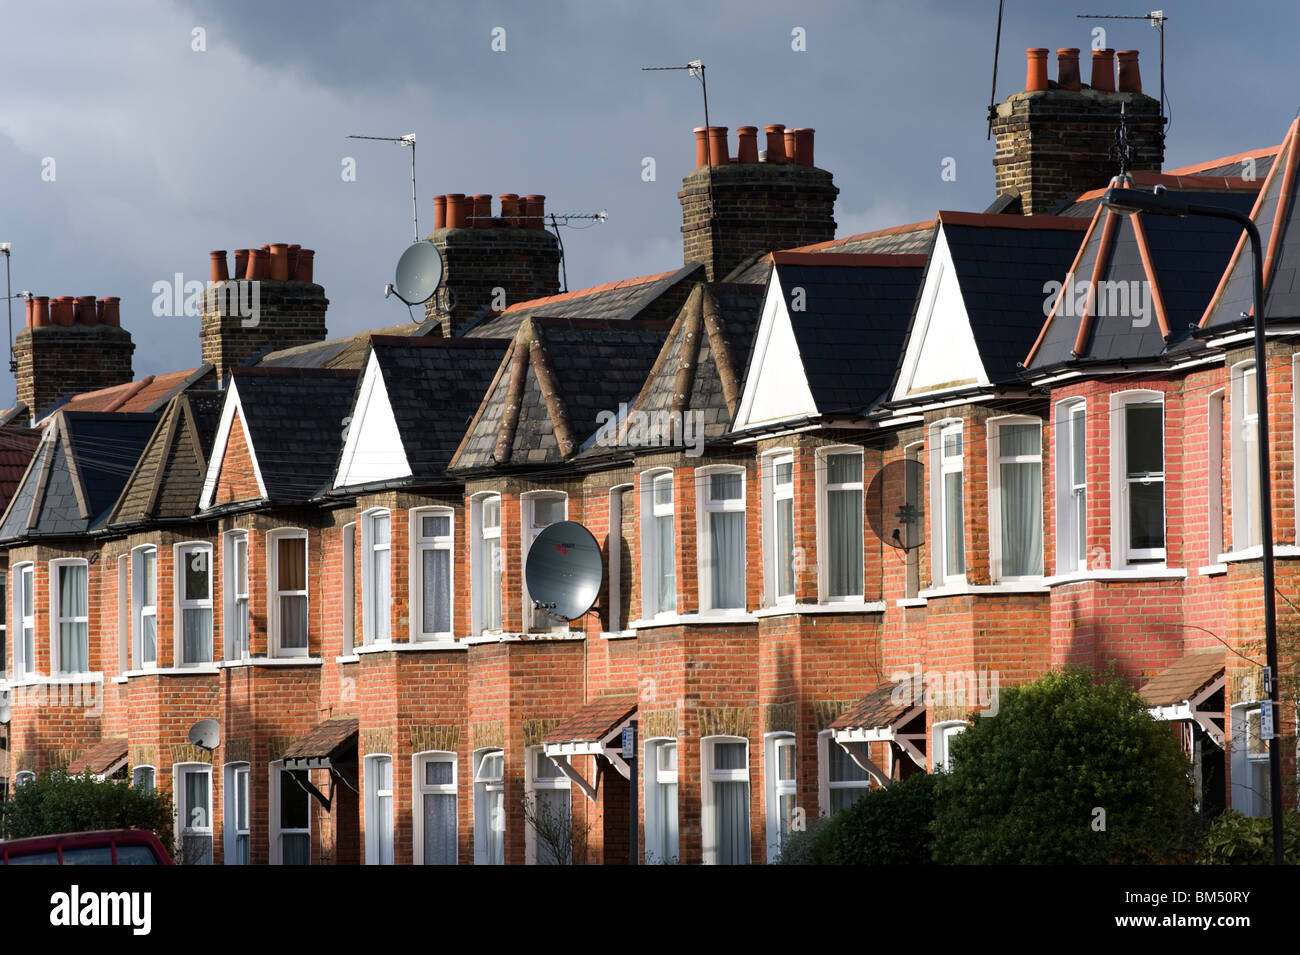 Row of terraced houses under overcast and stormy sky, London, UK - Stock Image